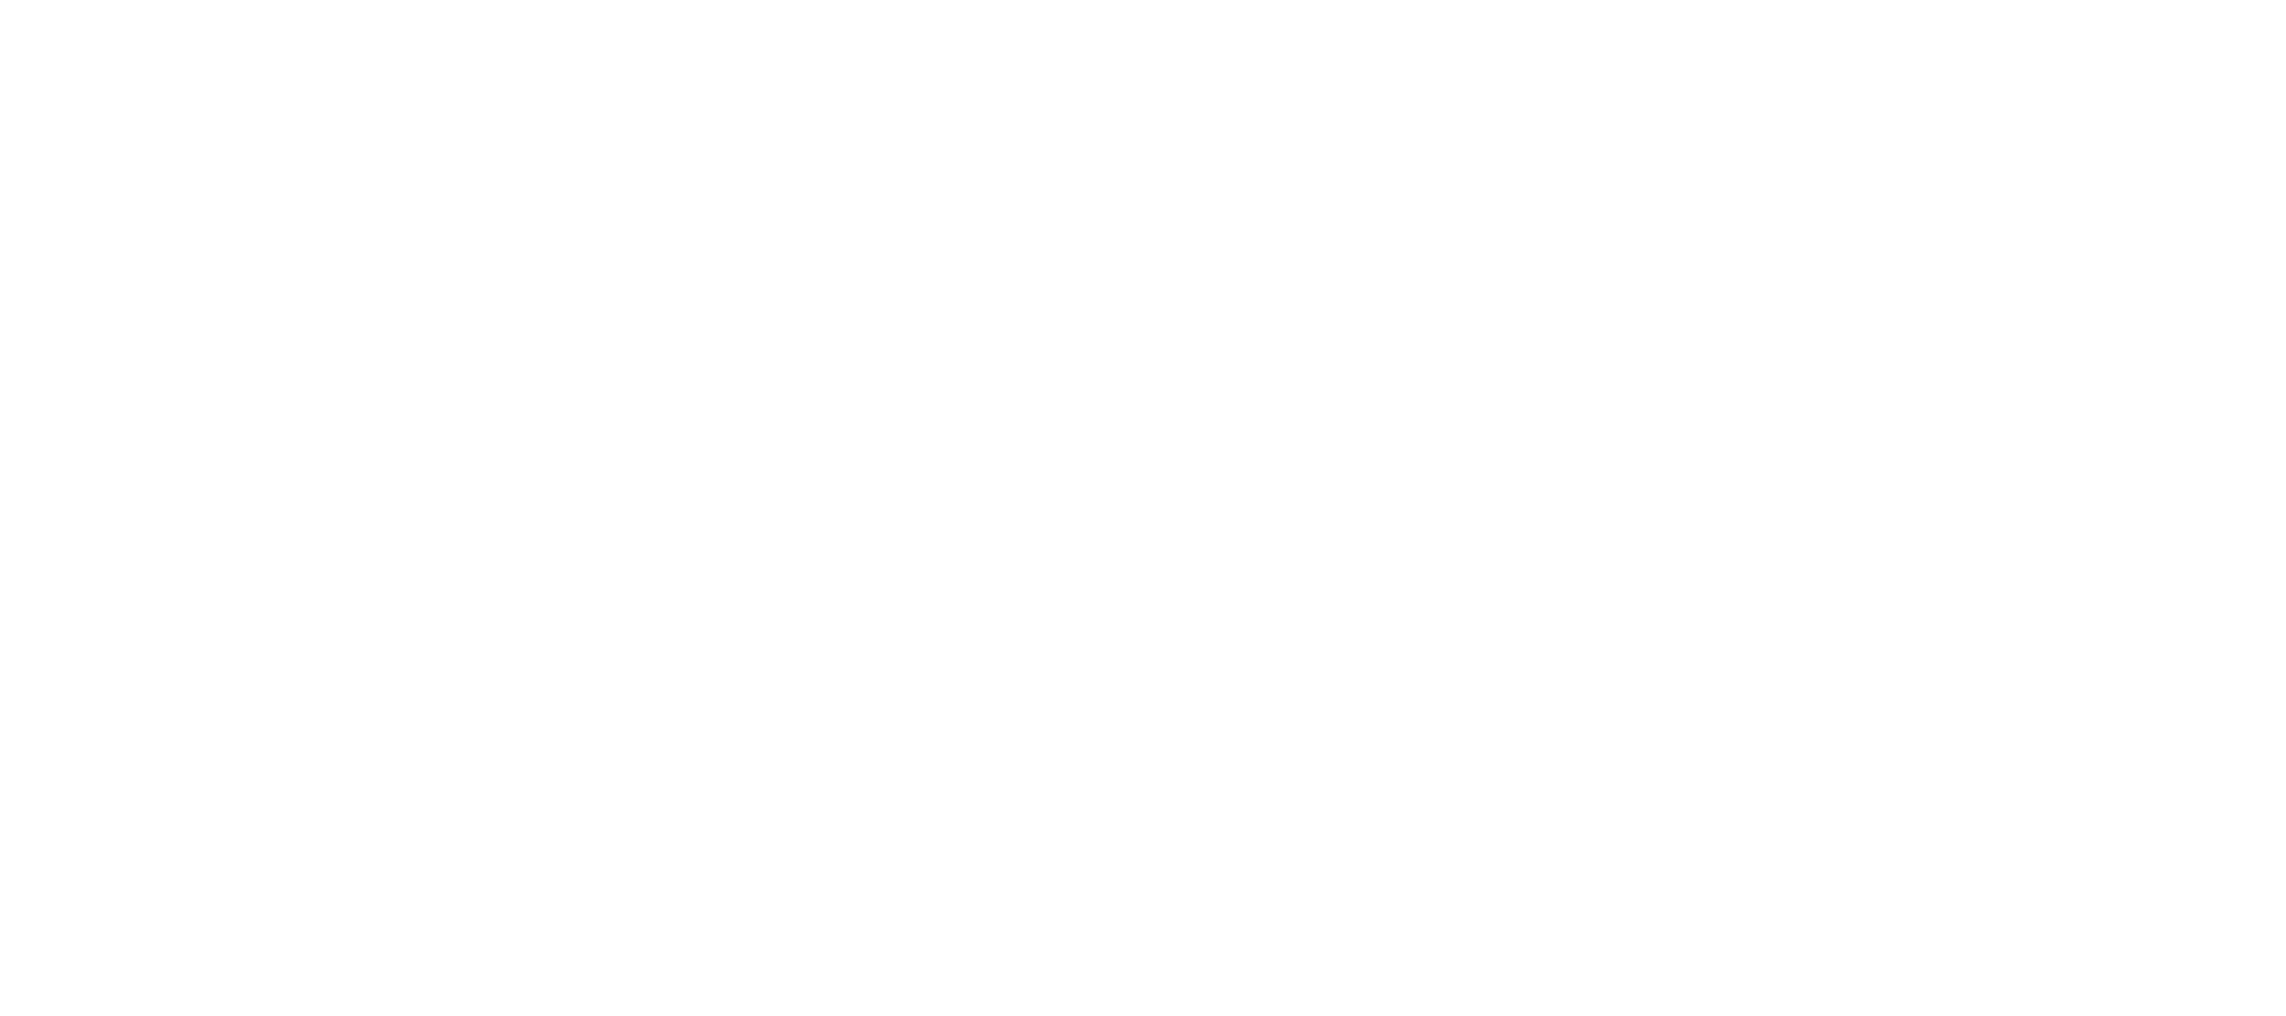 Widex Panamá